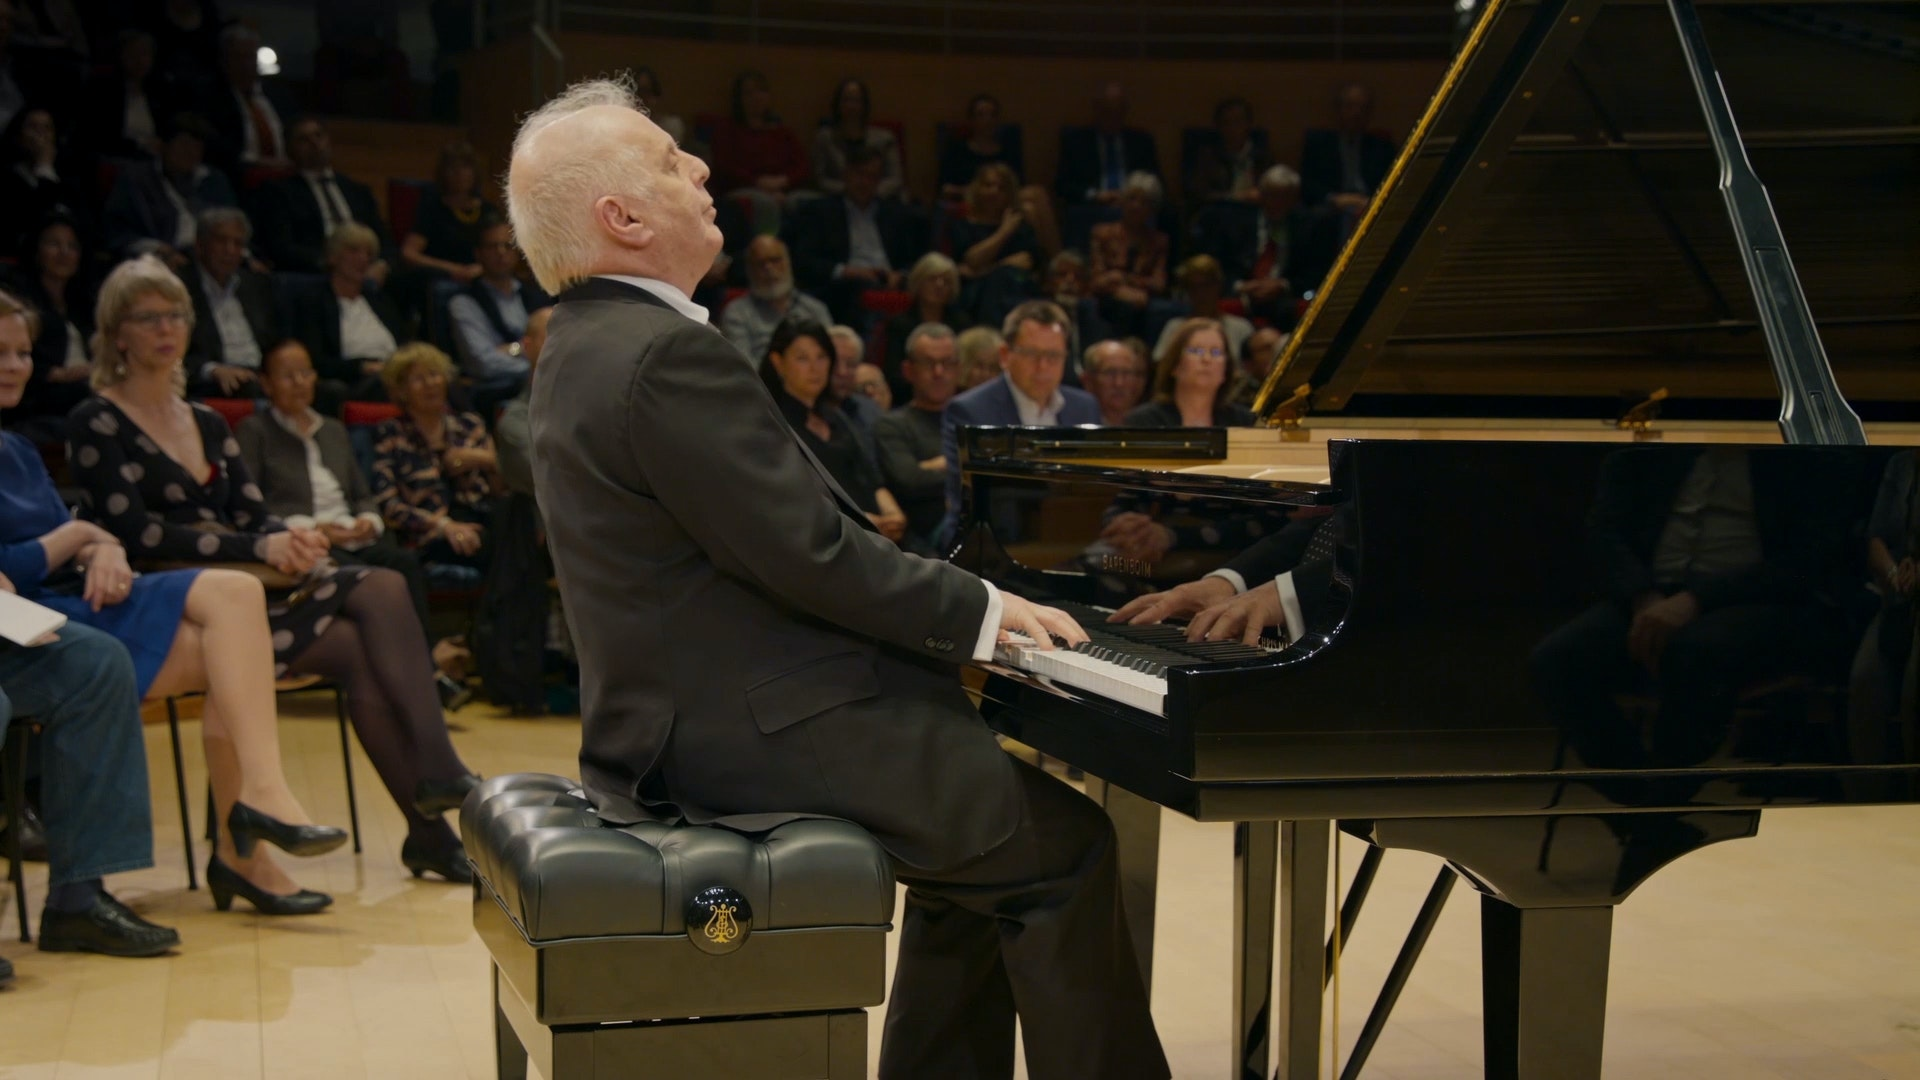 Daniel Barenboim performs Schubert's Piano Sonatas Nos. 16 and 21